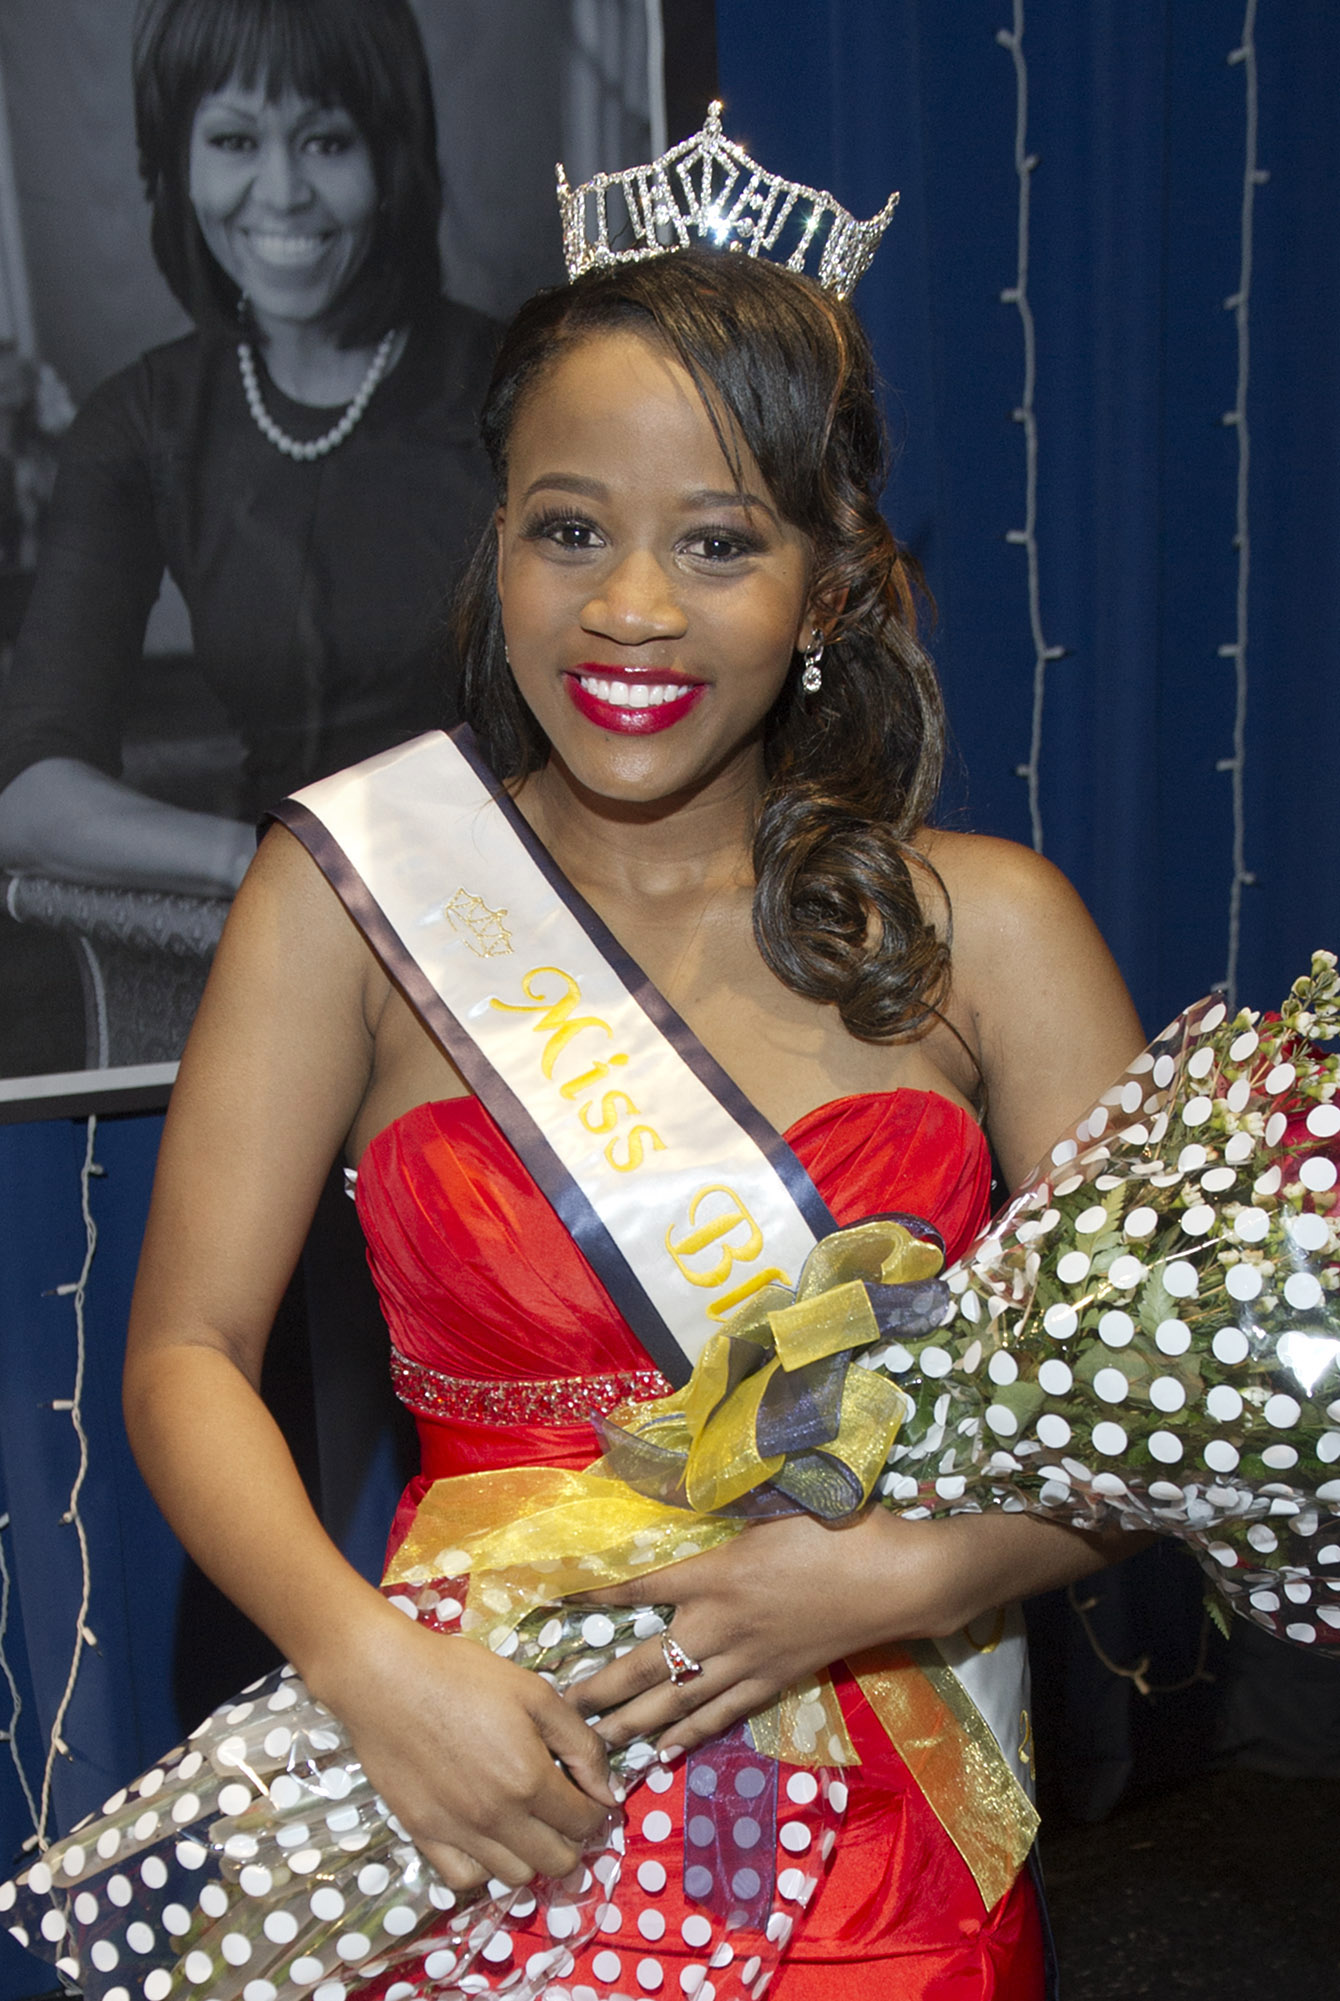 Boikgapo Bolelang, a junior forensic science and criminal justice major from Botswana, was crowned Miss Black UCO 2014 during the 30th annual pageant held on Central's campus, Saturday, Feb. 8.